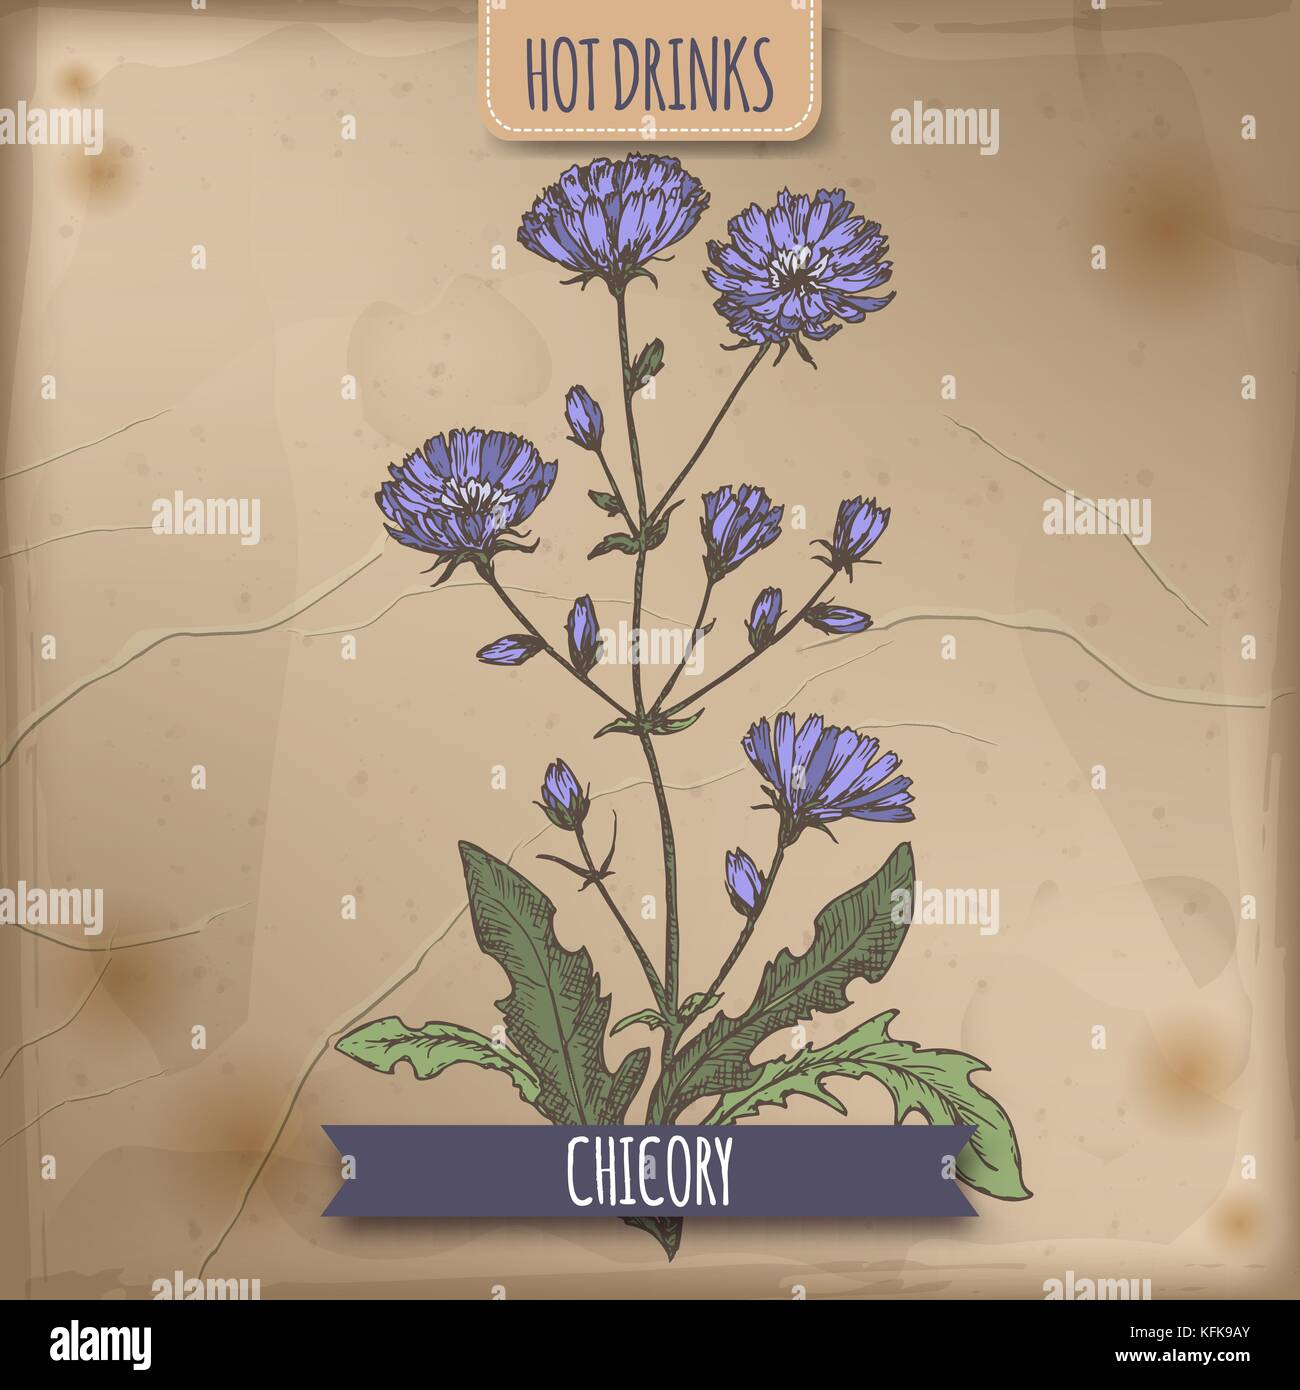 Cichorium intybus aka common chicory color sketch. Used as coffee substitute. - Stock Image